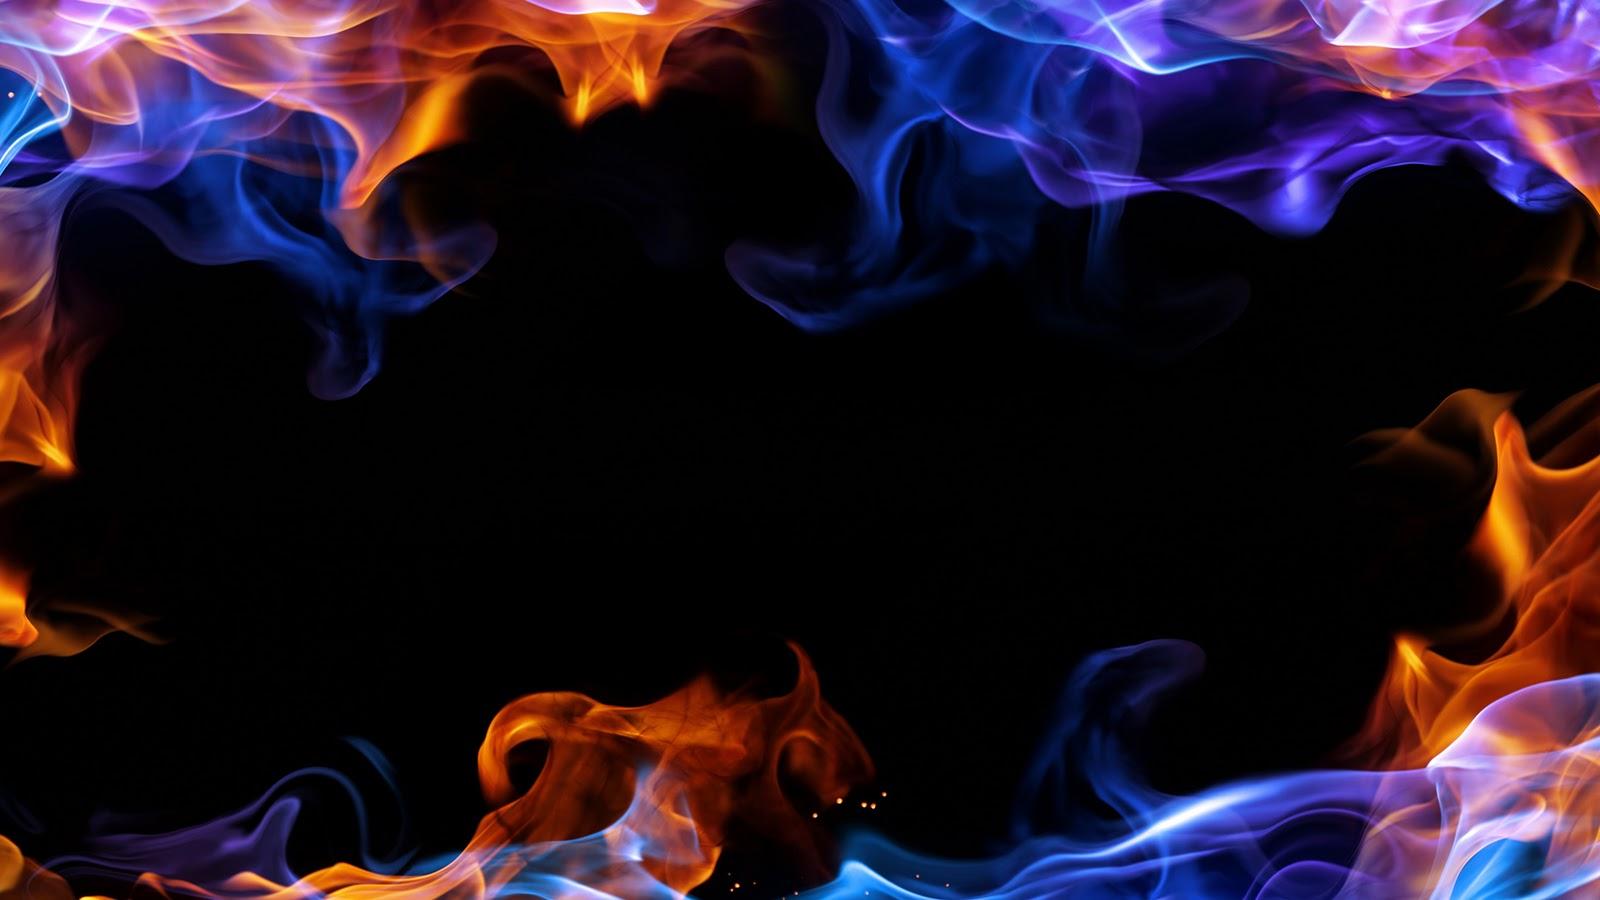 Playing Fire Wallpaper Free: 18 Awesome HD Fire Wallpapers